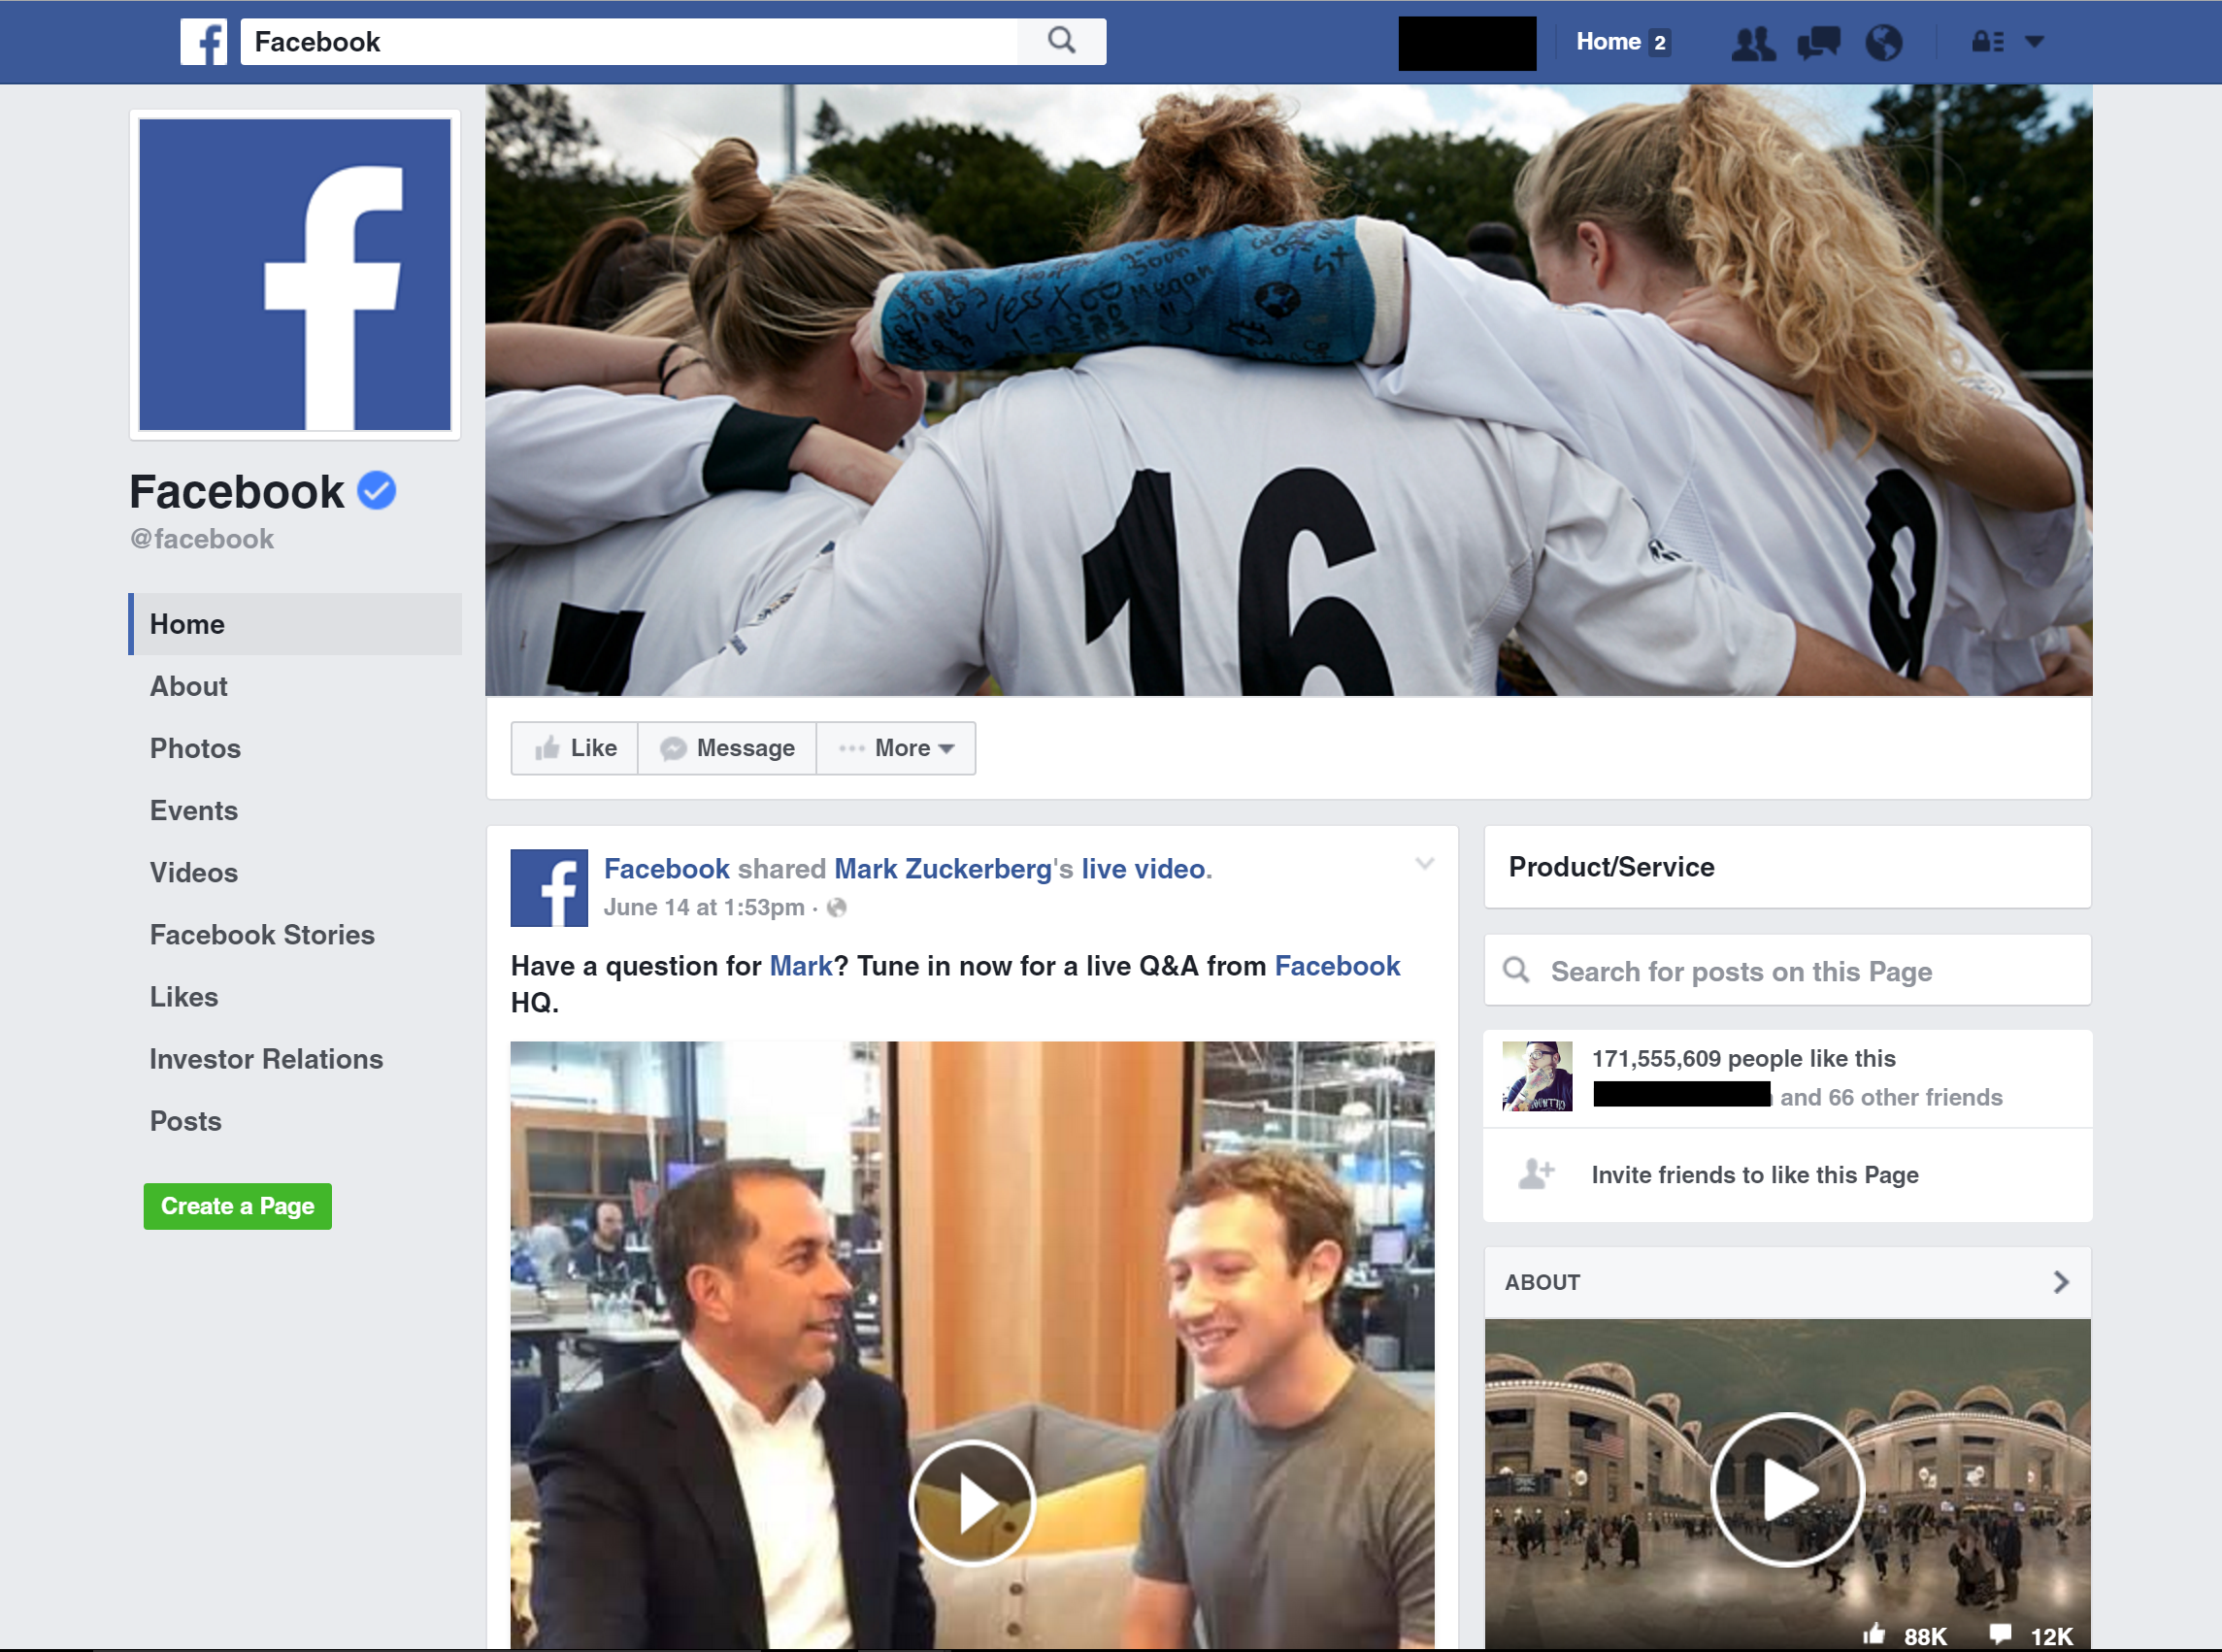 Facebook's Testing a New, Ad-Free Desktop Page Layout | Social Media Today